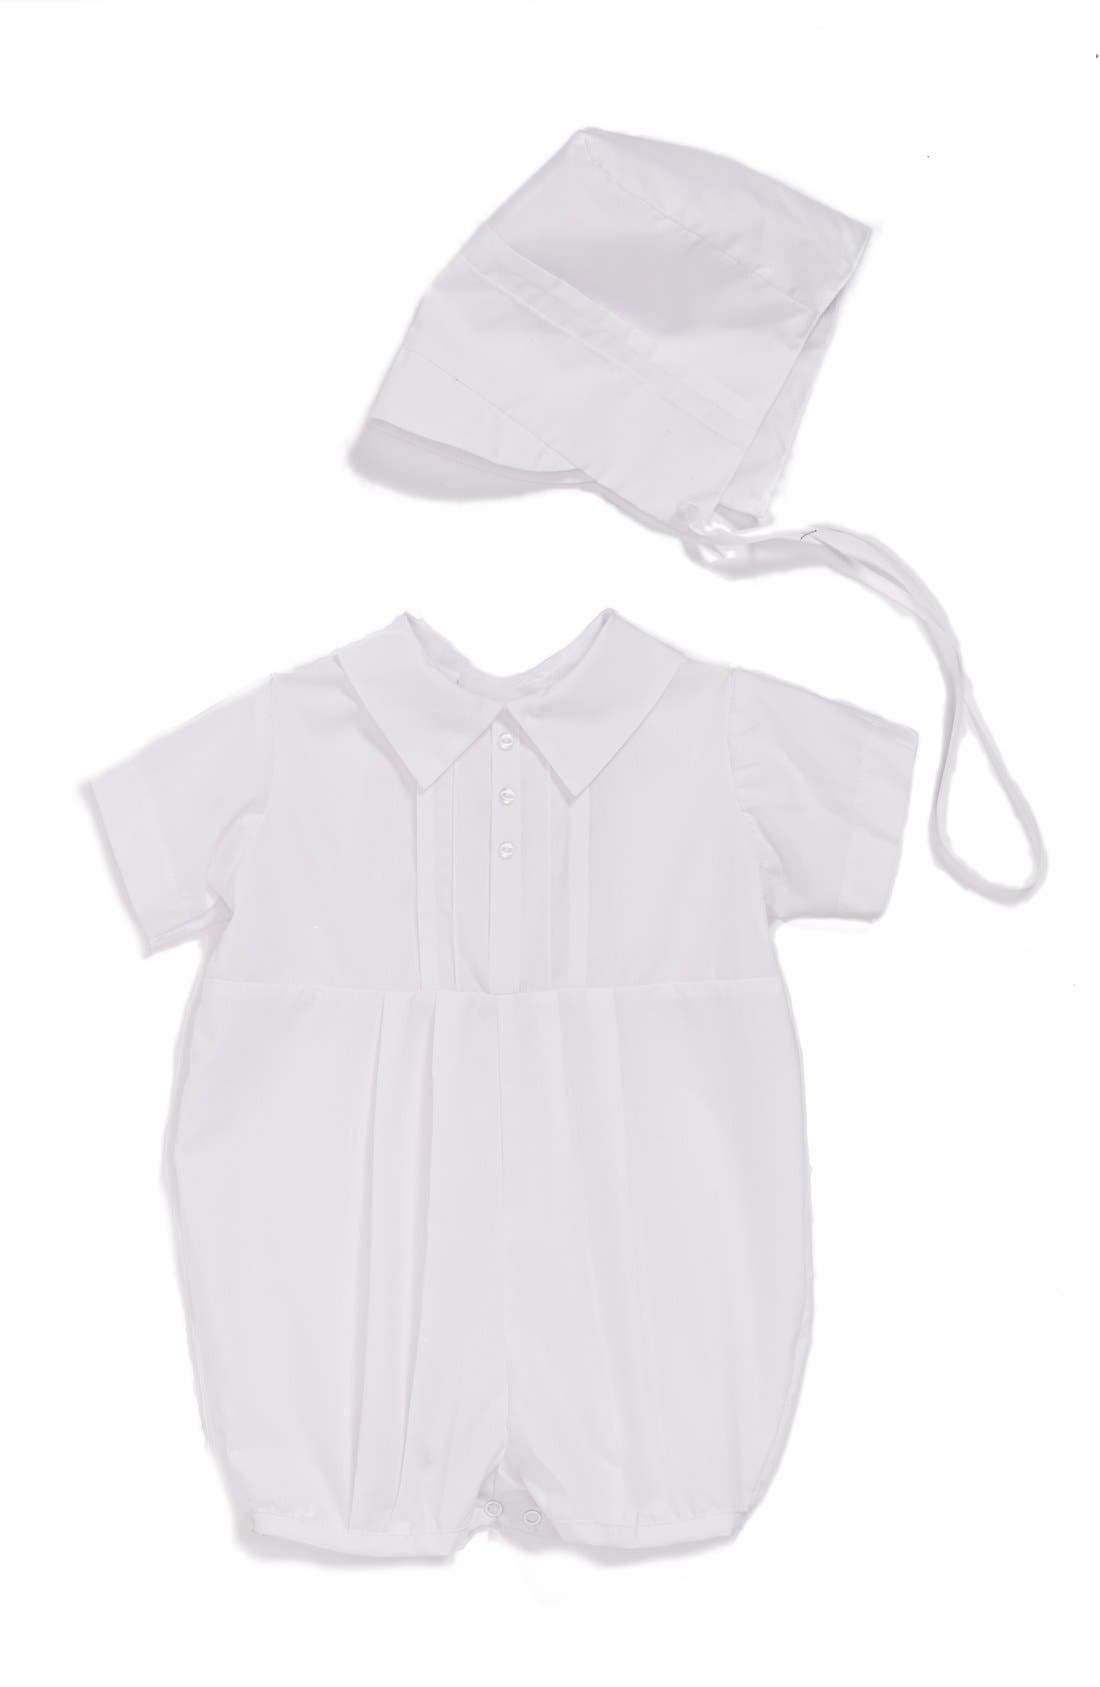 Little Things Mean a Lot Christening Romper & Hat Set (Baby)